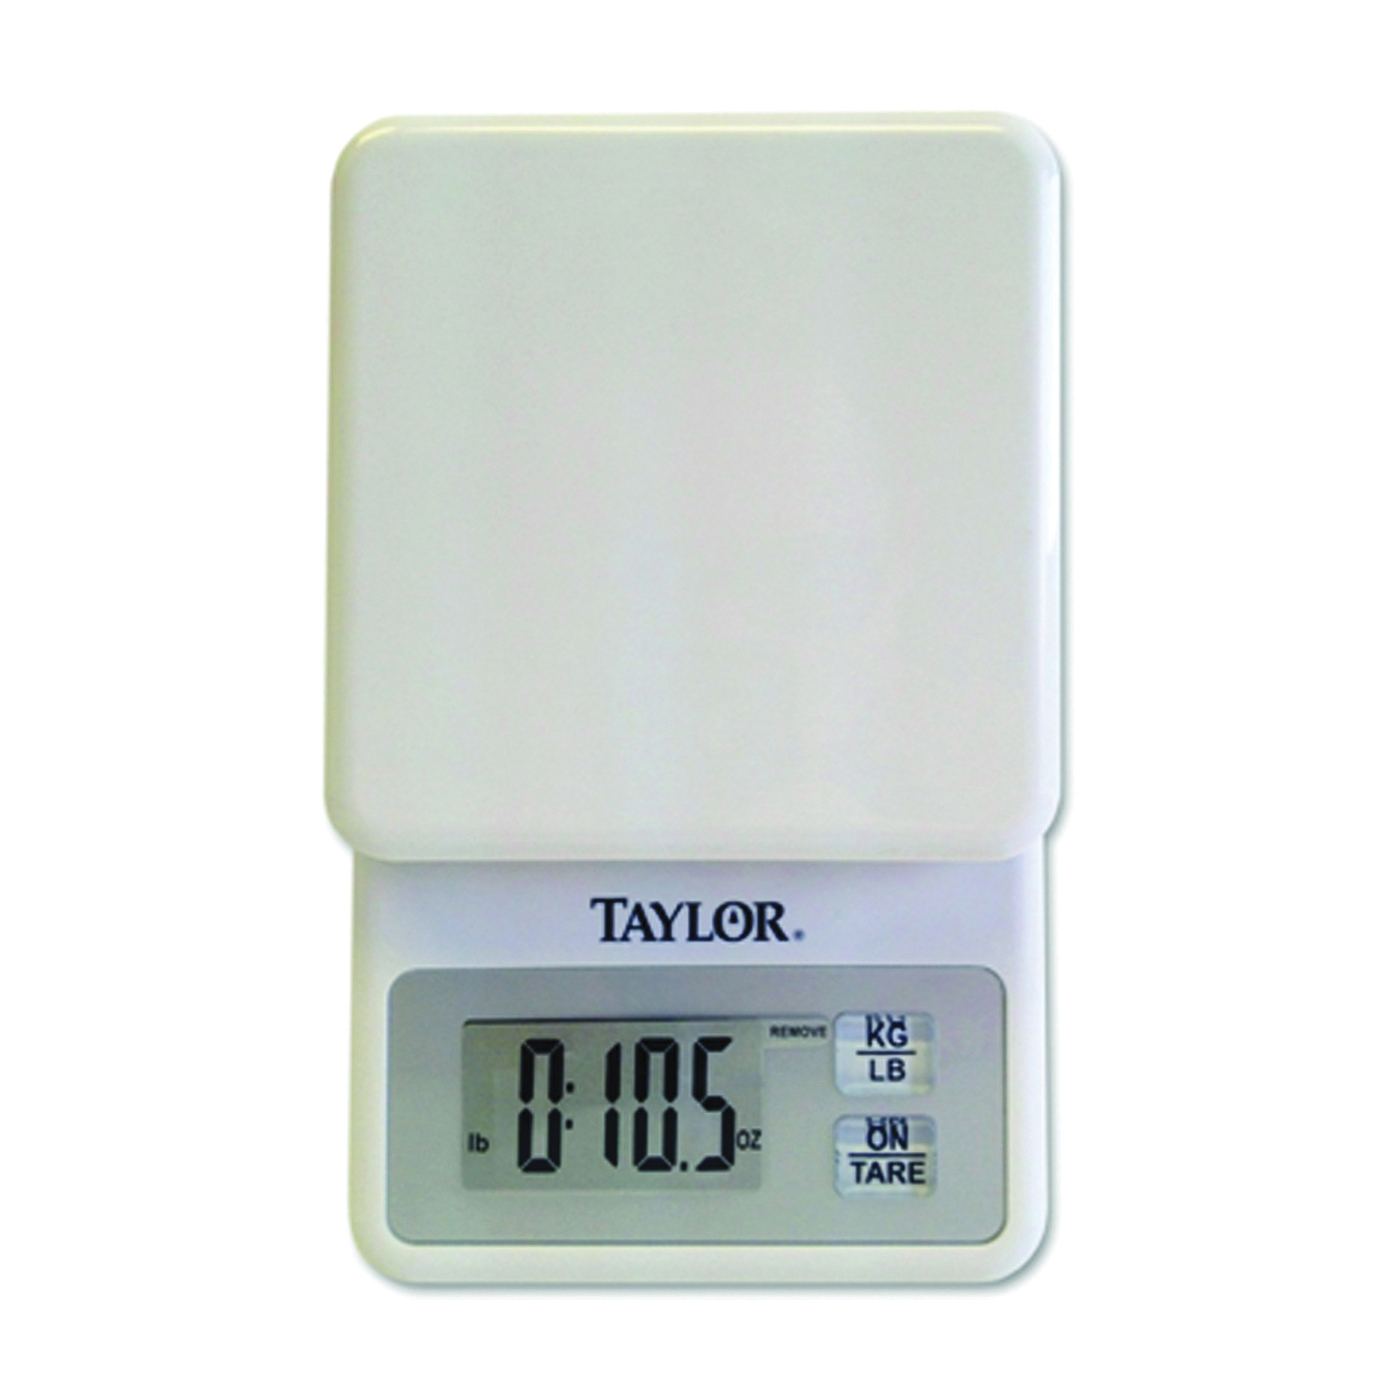 Picture of Taylor 3817 Kitchen Scale, 11 lb Capacity, LCD Display, White, g, lb, oz